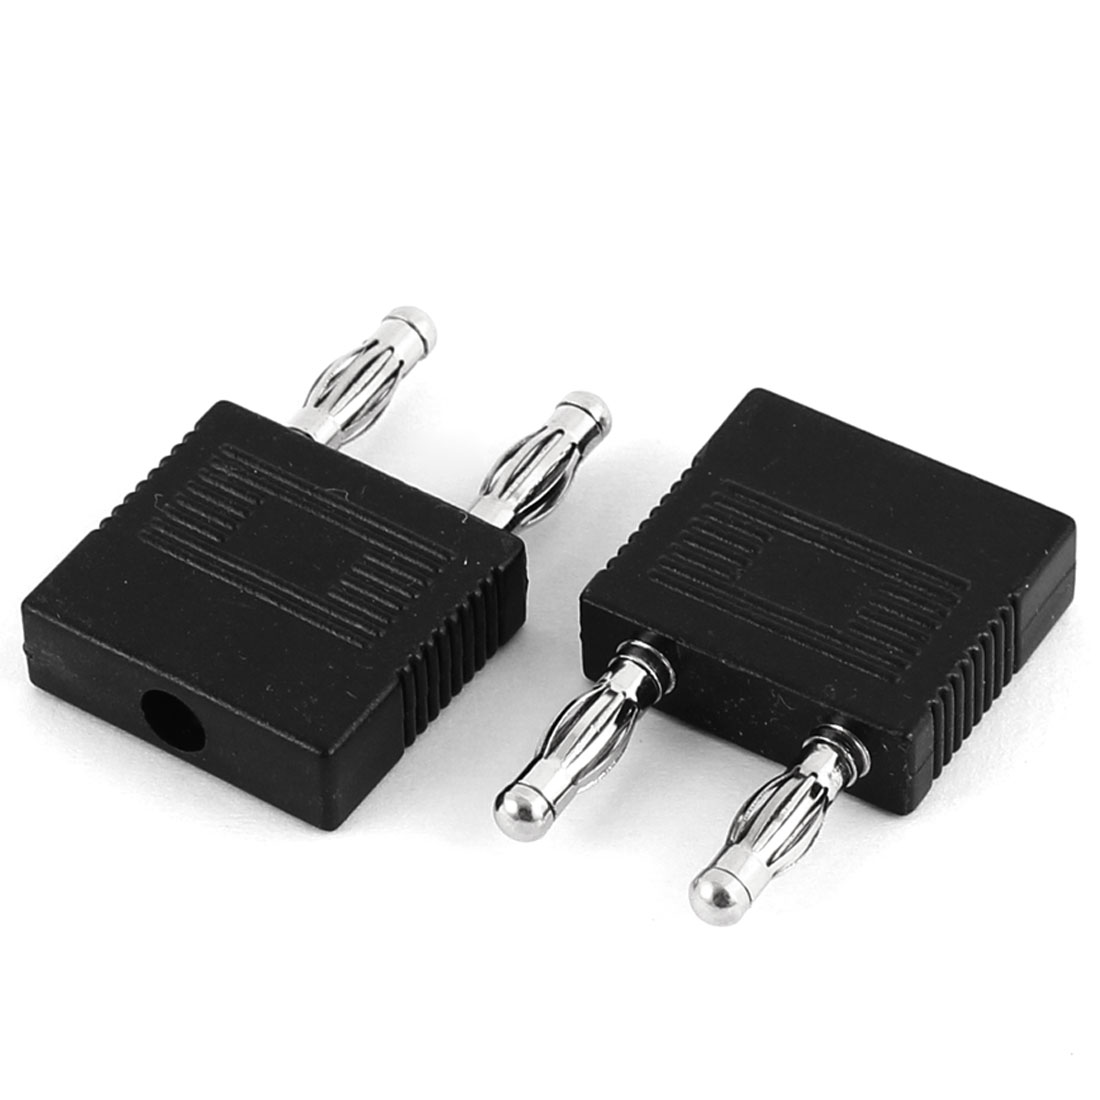 2 Pcs 4mm Dual Male to One Female Banana Jack Adapter Connector